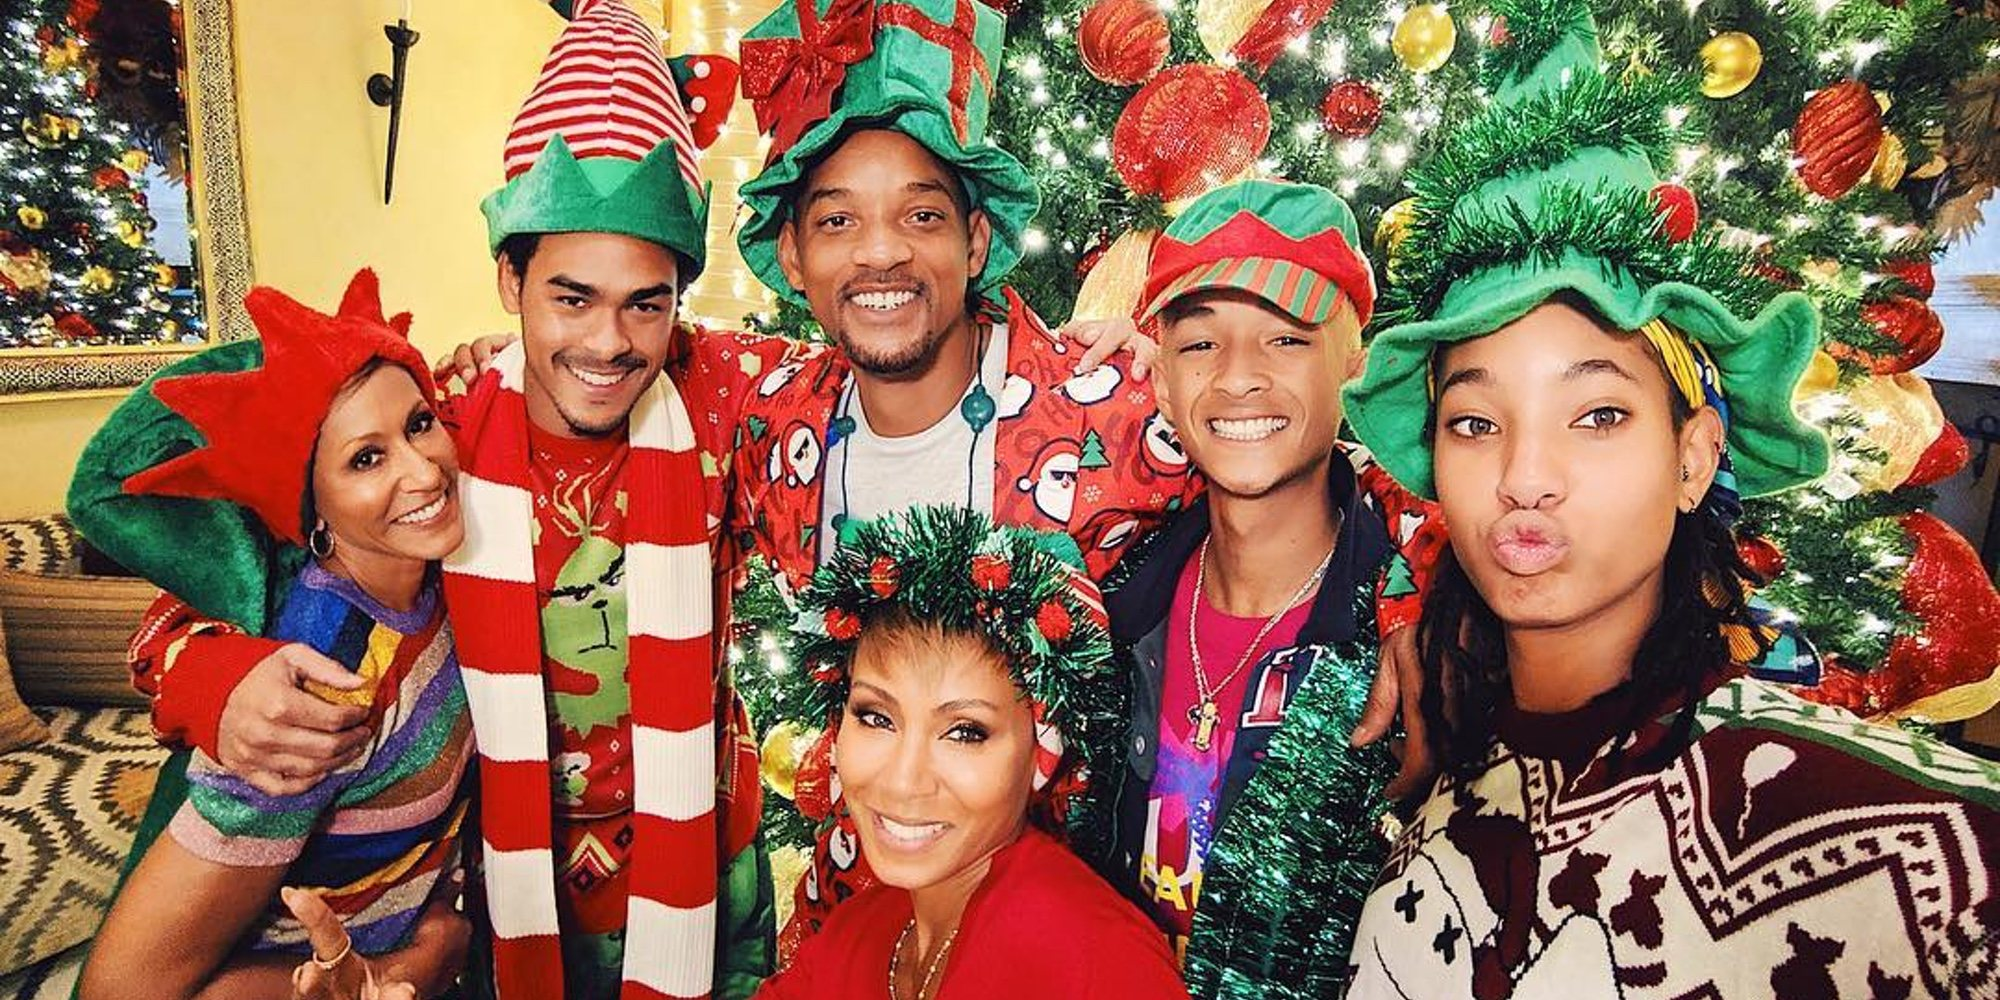 Will Smith, Nick Jonas,  Jennifer Lopez... Así celebraron las celebrities internacionales la Navidad